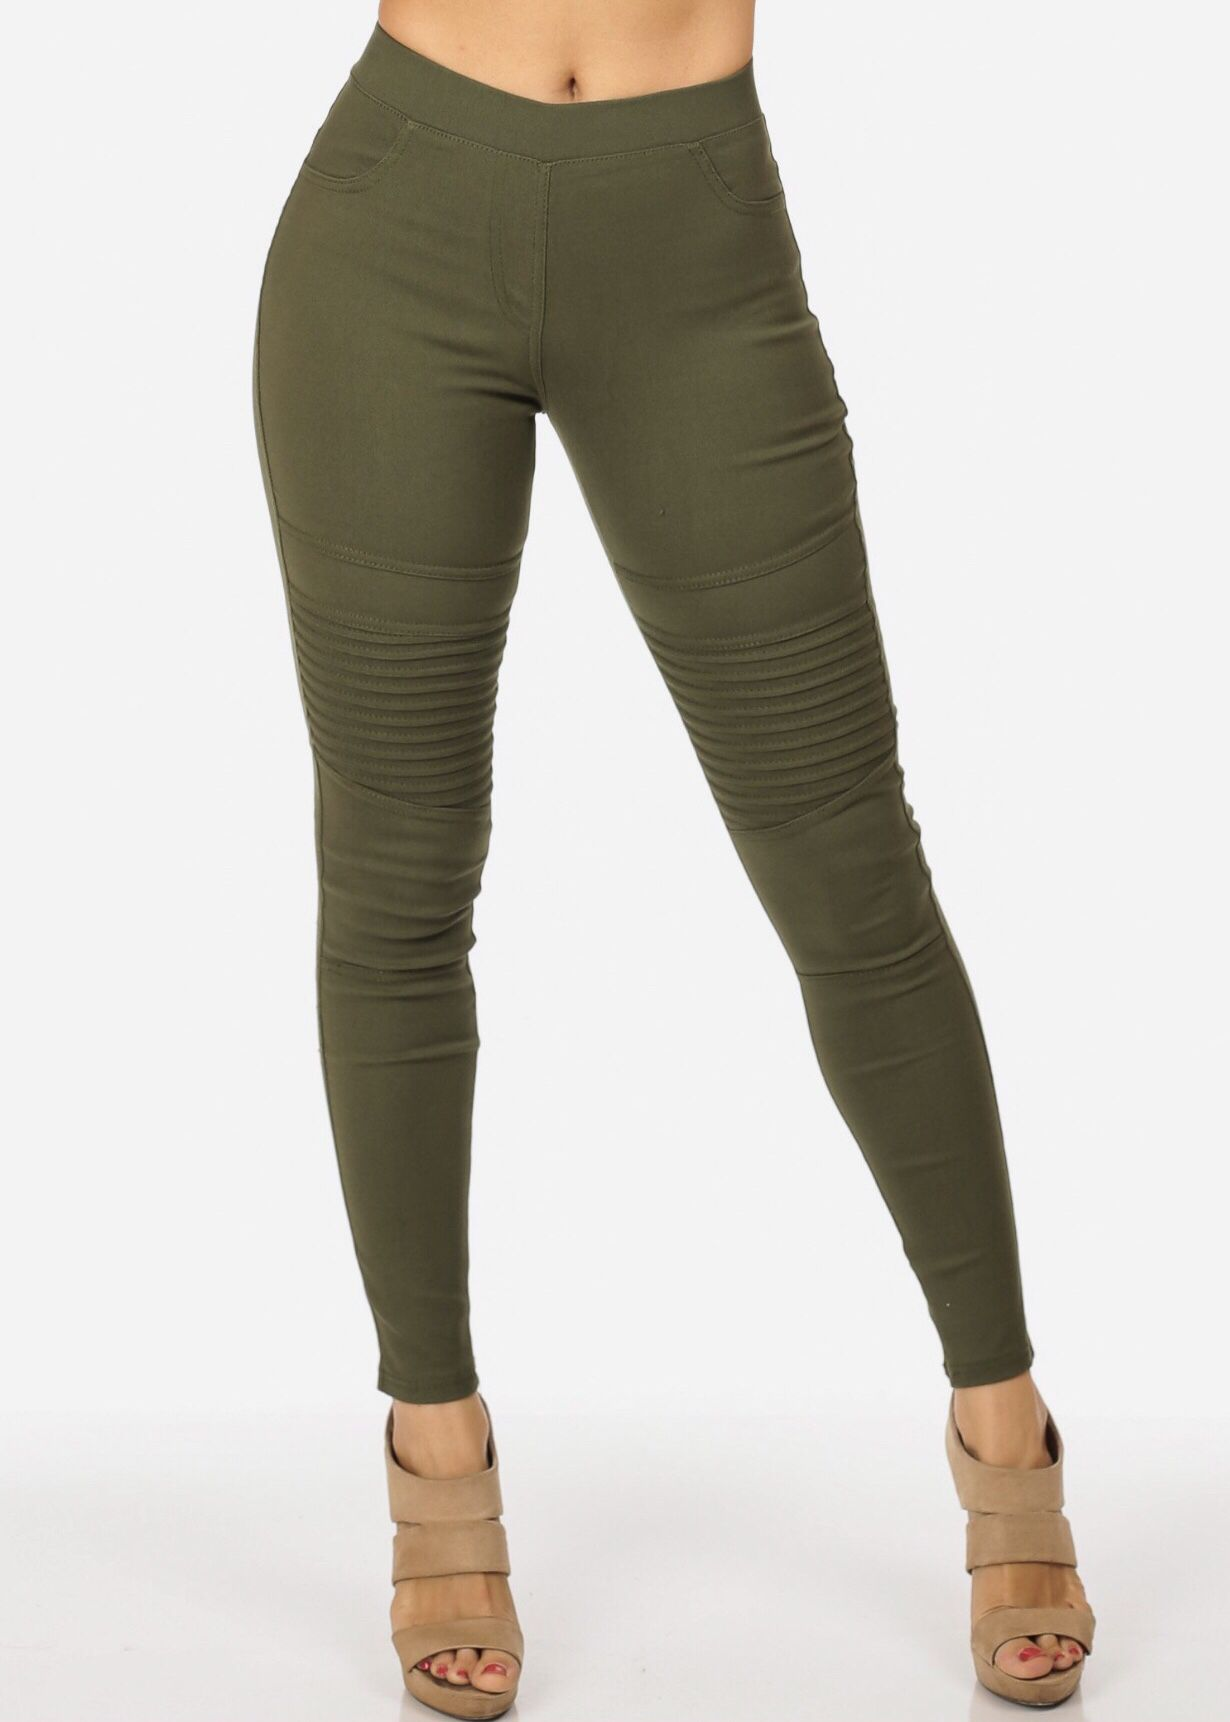 2eec6bcc201 Olive Skinny Moto One of the best things that have ever happened to moto.  Super